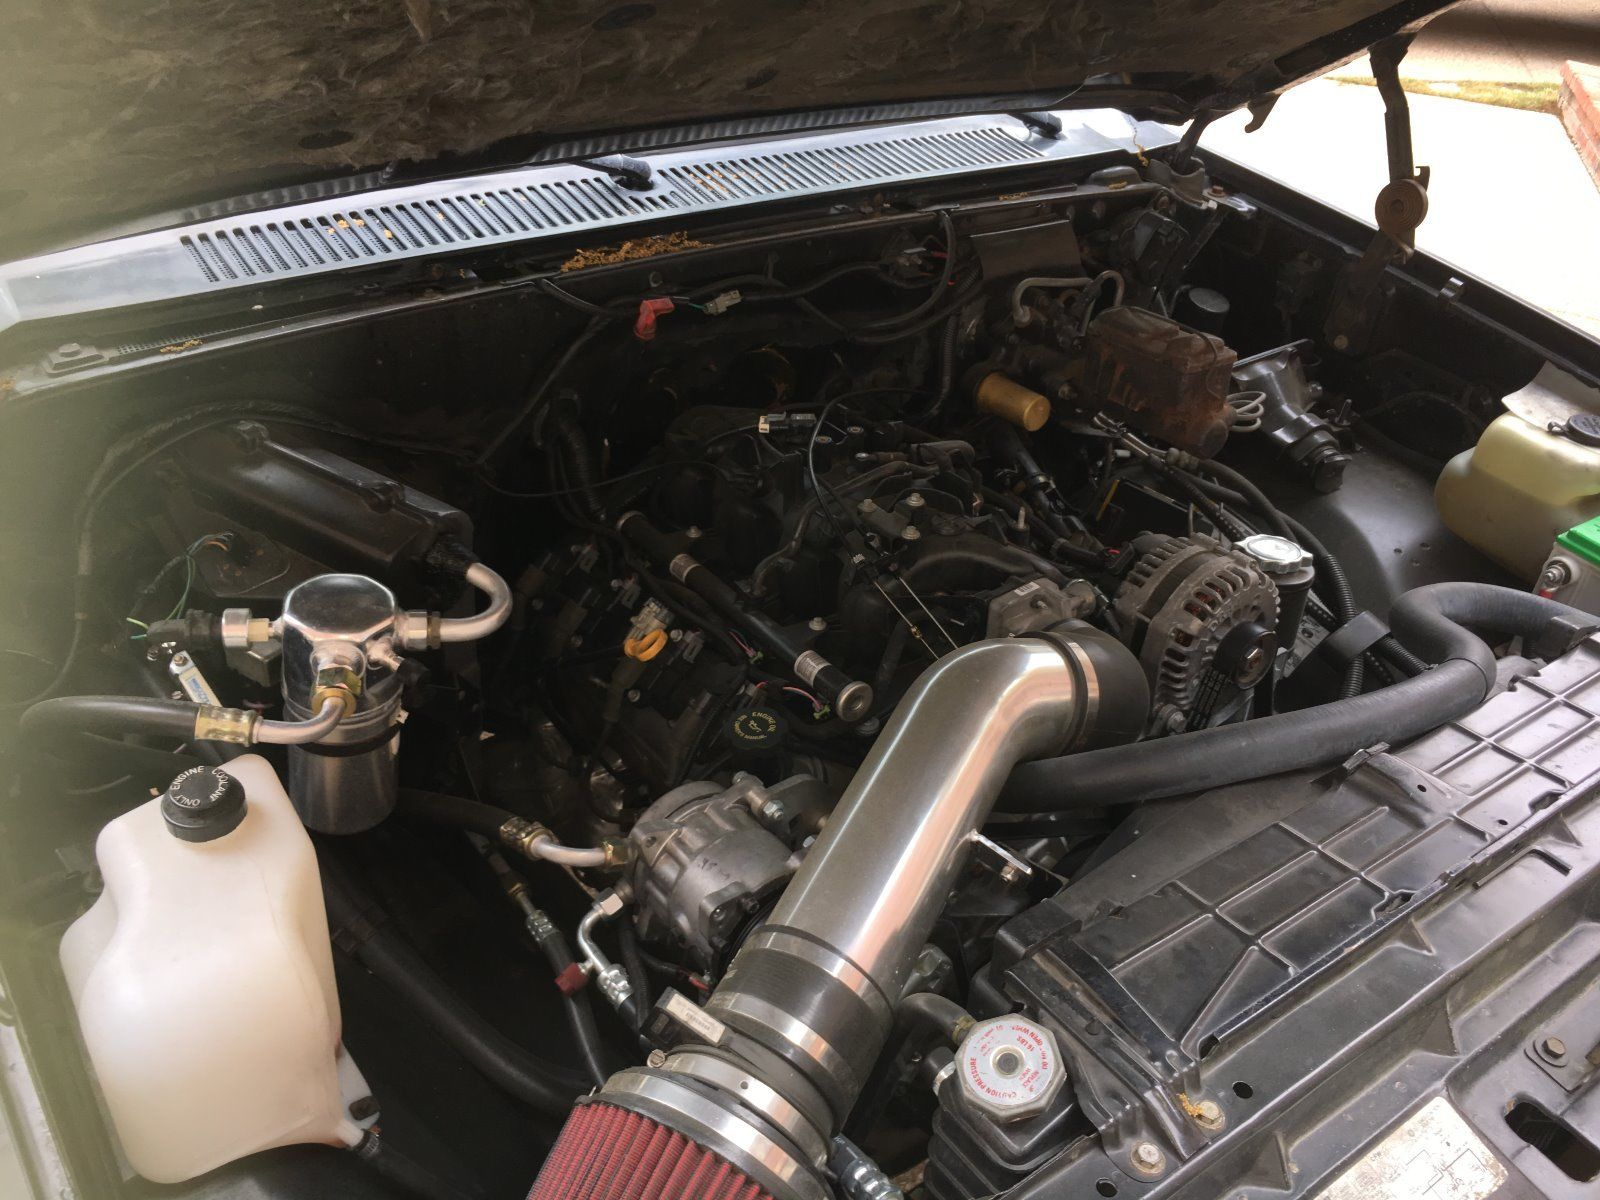 S L furthermore Alain Robert Arrested Sydney After Climbing Thsi Lq L Lx moreover S L also D Gm Reman Lq L Ls Intake Wiring Harness Ecm Front Accessories Img moreover D Lq L E Engine Transmission  puter  plete Pullout Gxvyscm Tsx X. on l harness lq